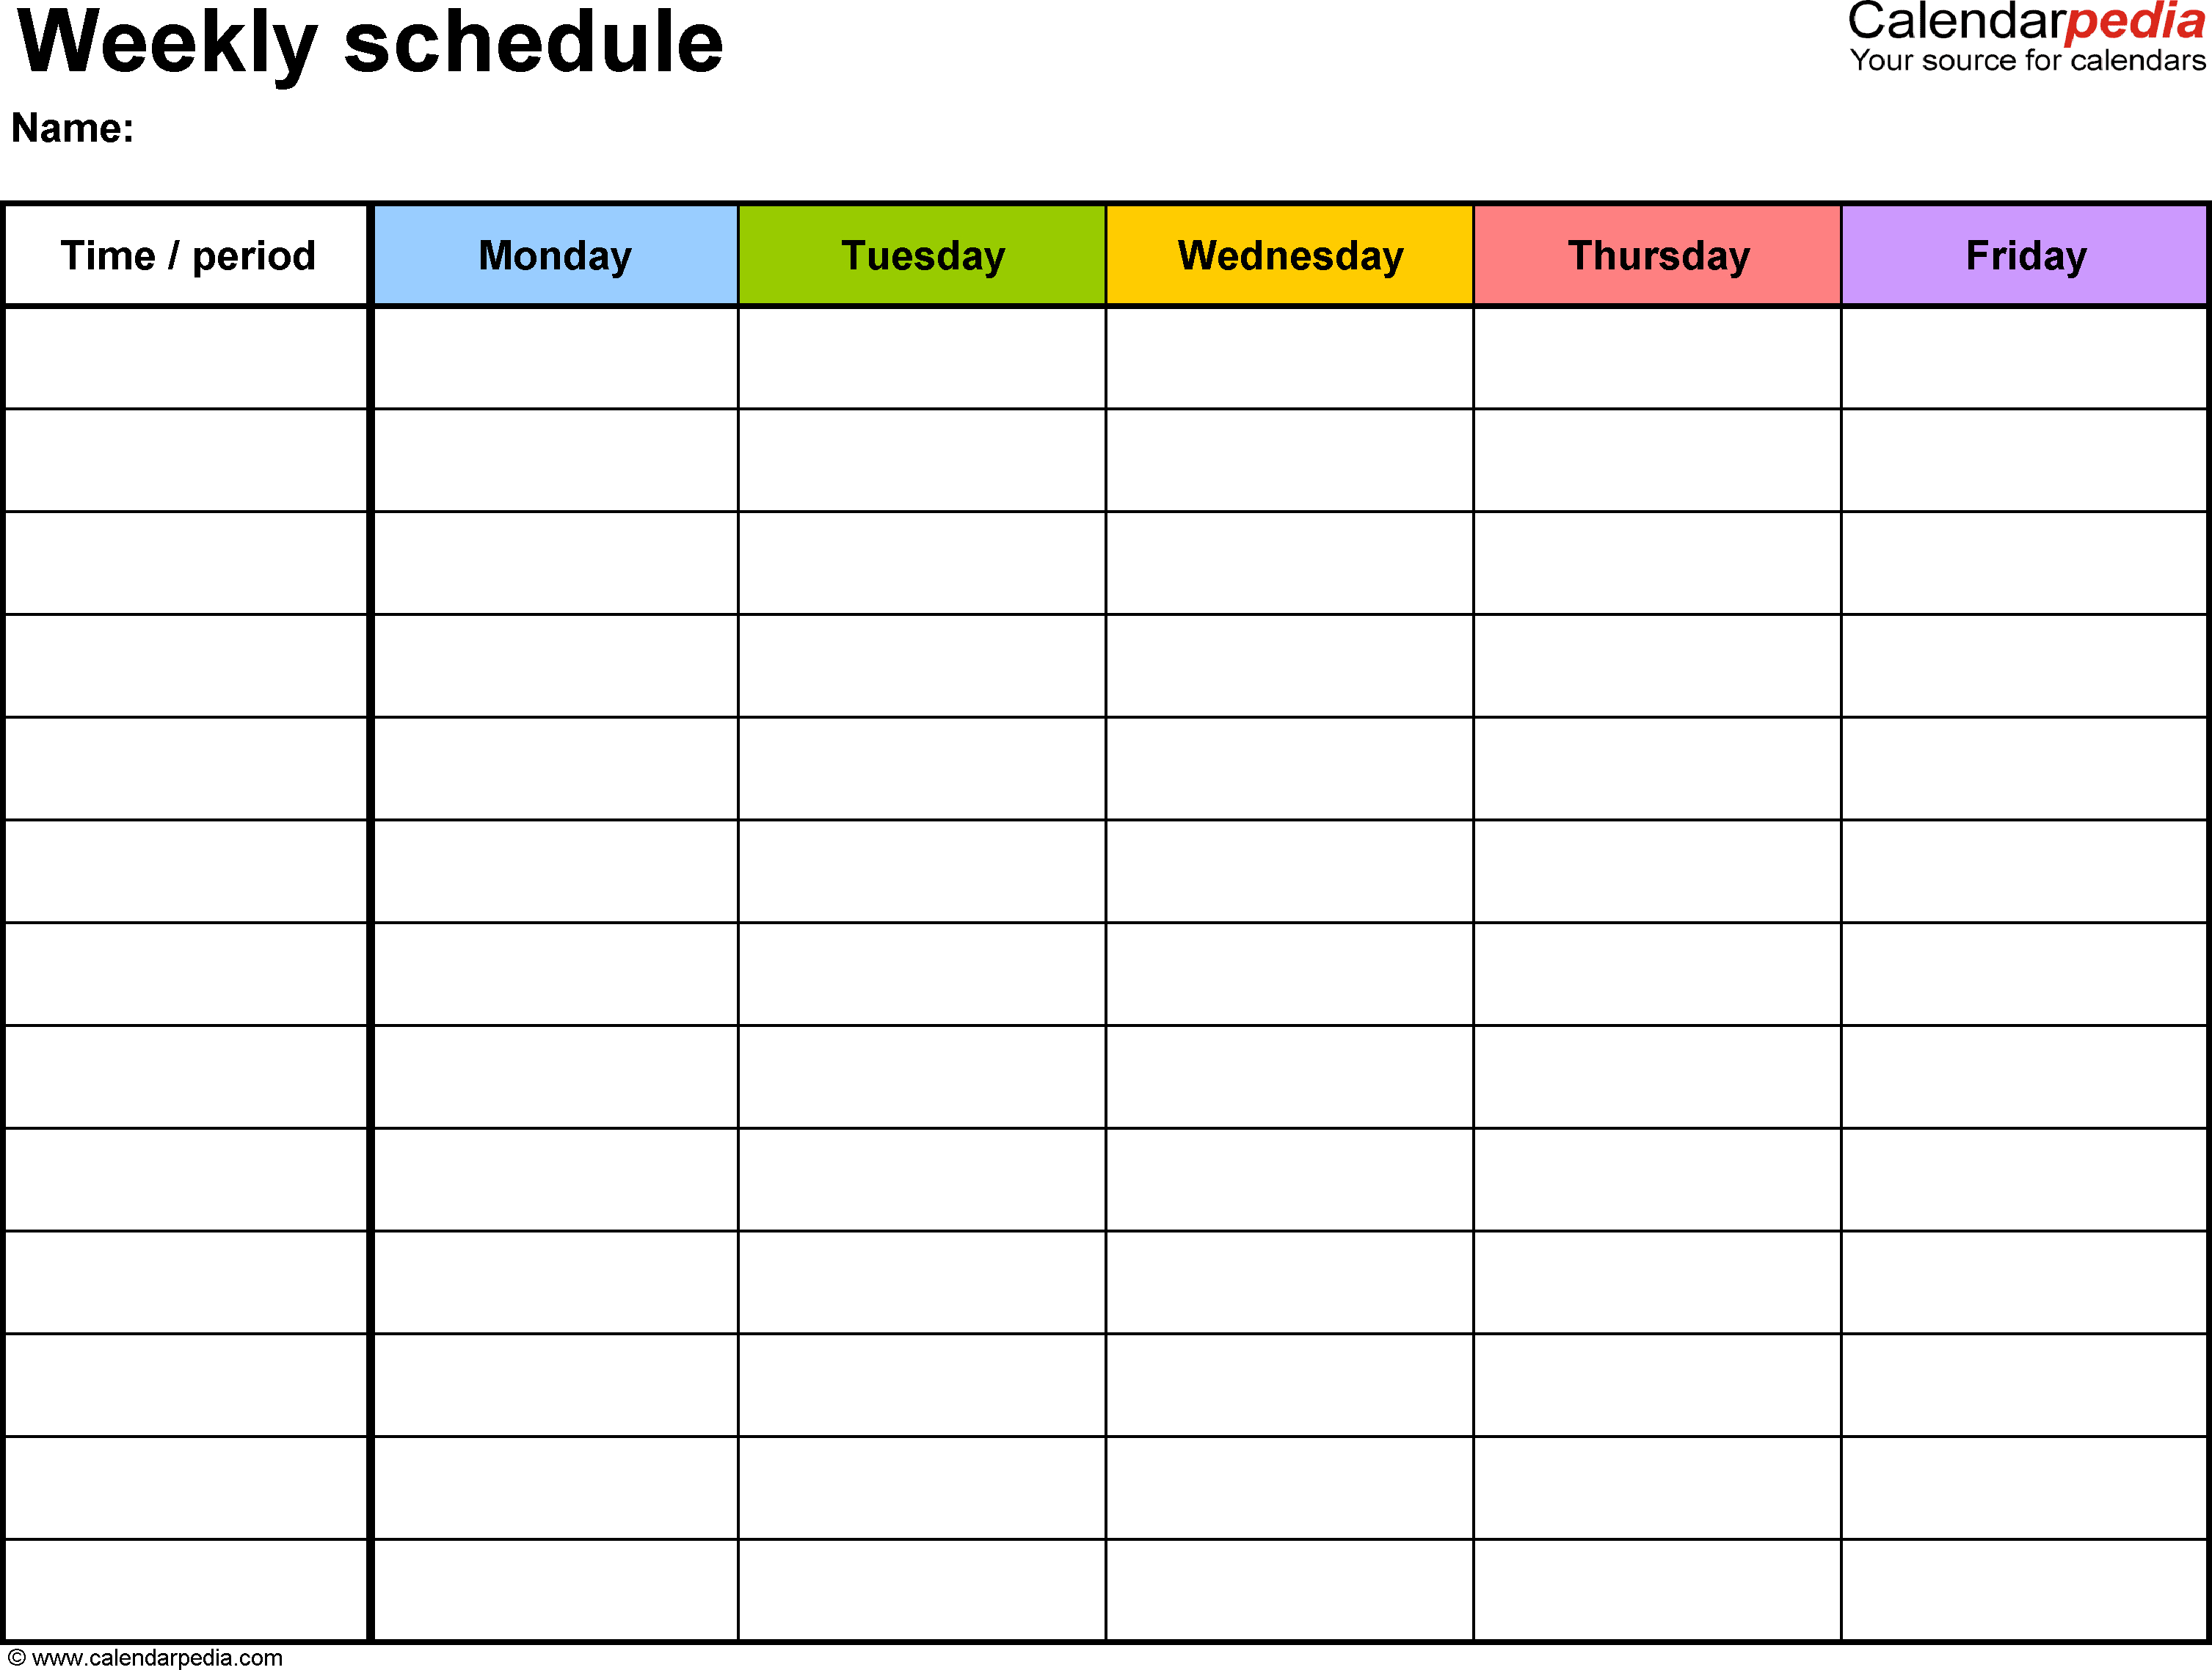 Free Weekly Schedule Templates For Word - 18 Templates pertaining to 5 Day Calendar Template Word